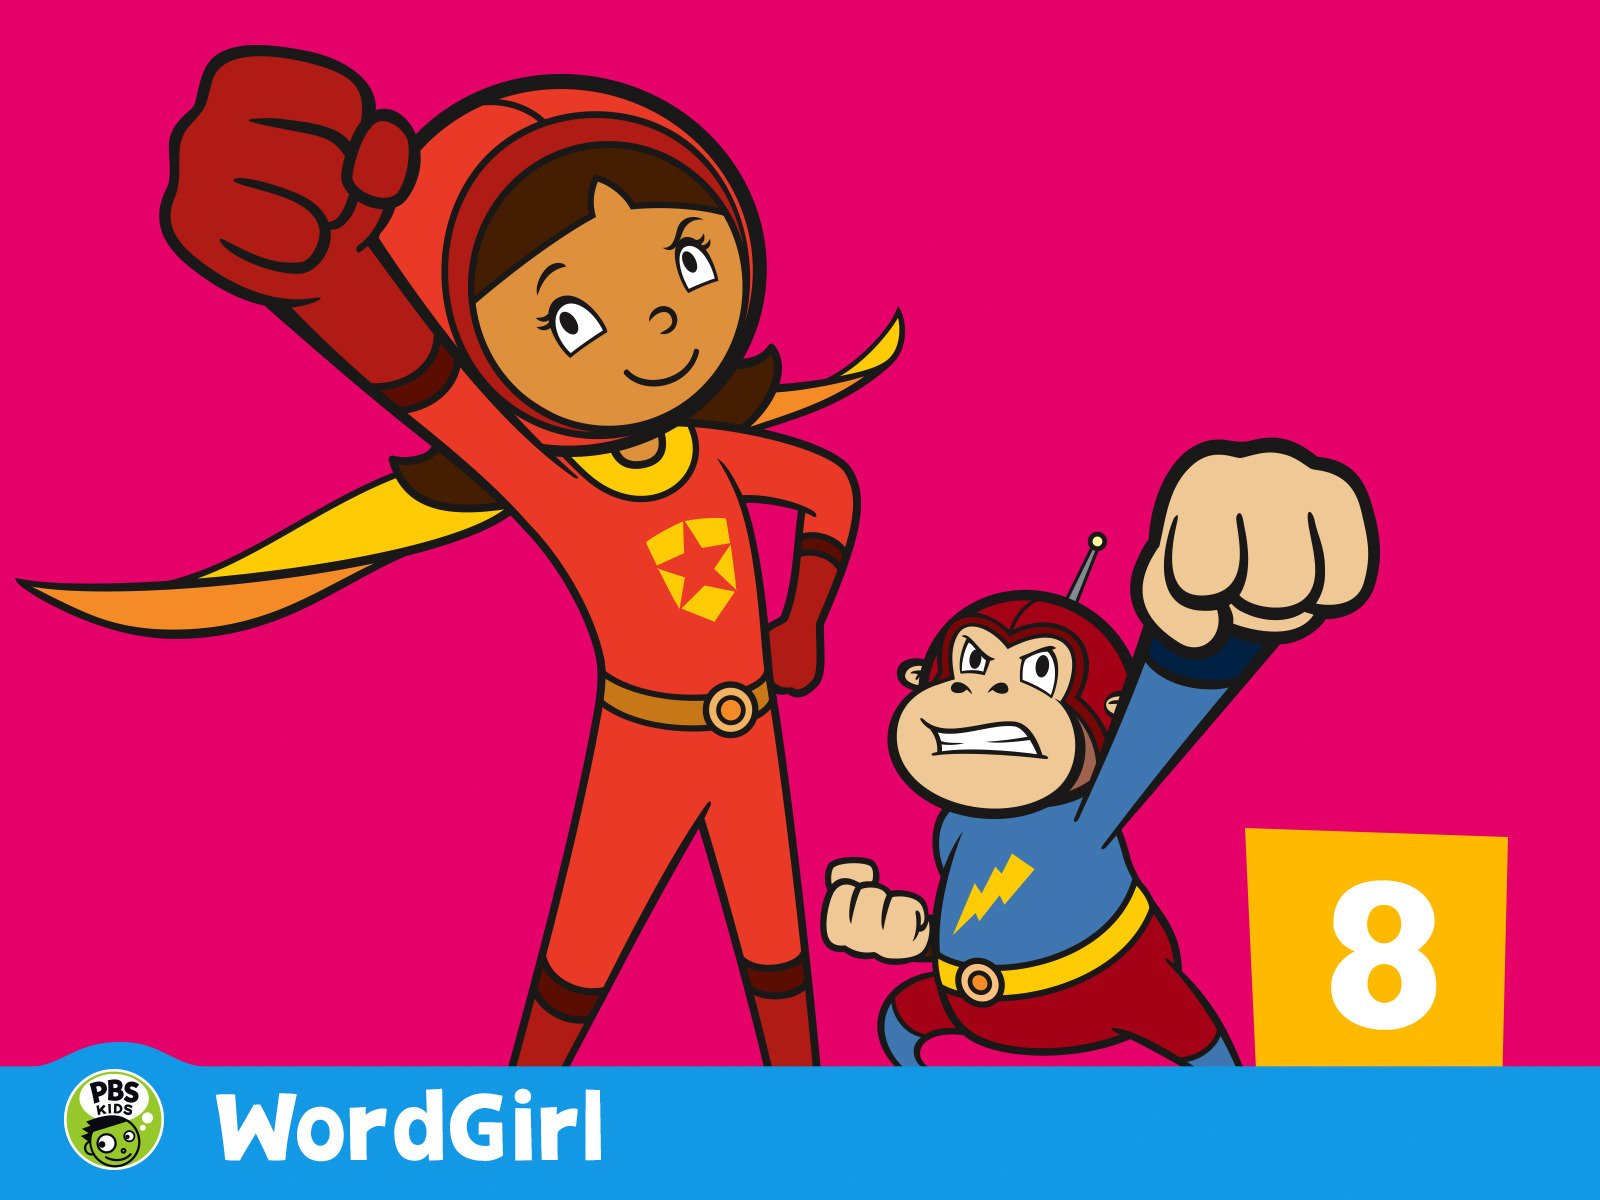 amazon com wordgirl season 8 scholastic entertainment amazon